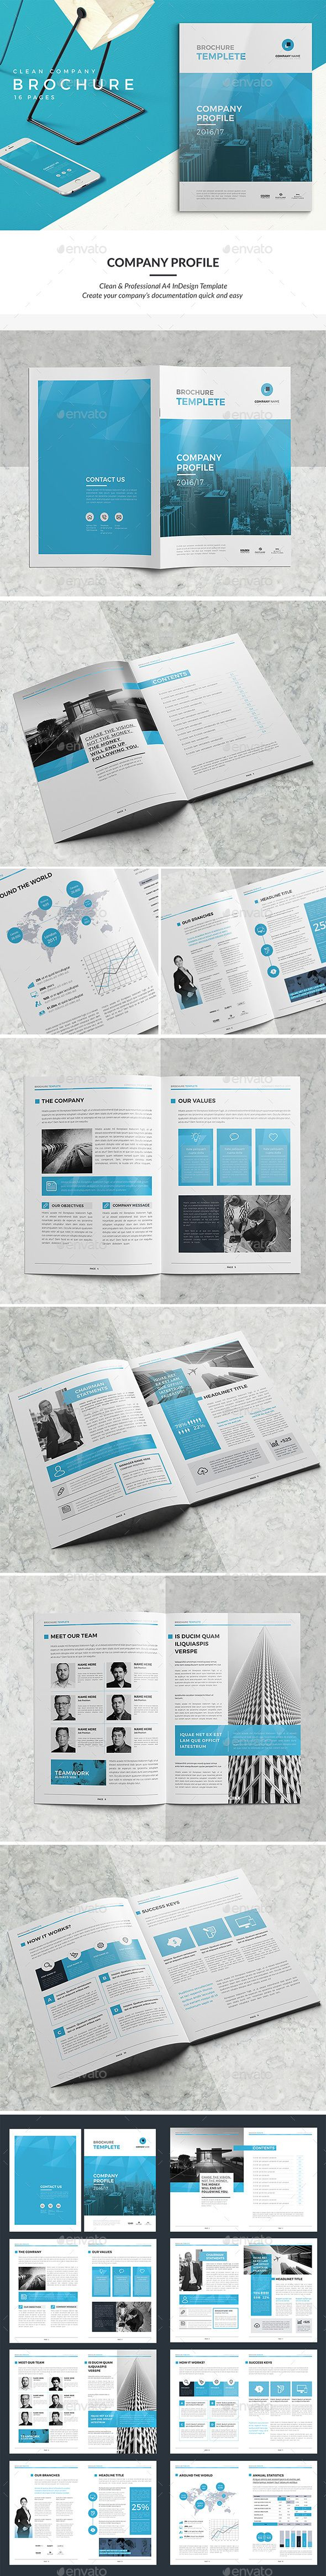 Clean Company Profile Brochure Template InDesign INDD #download ...